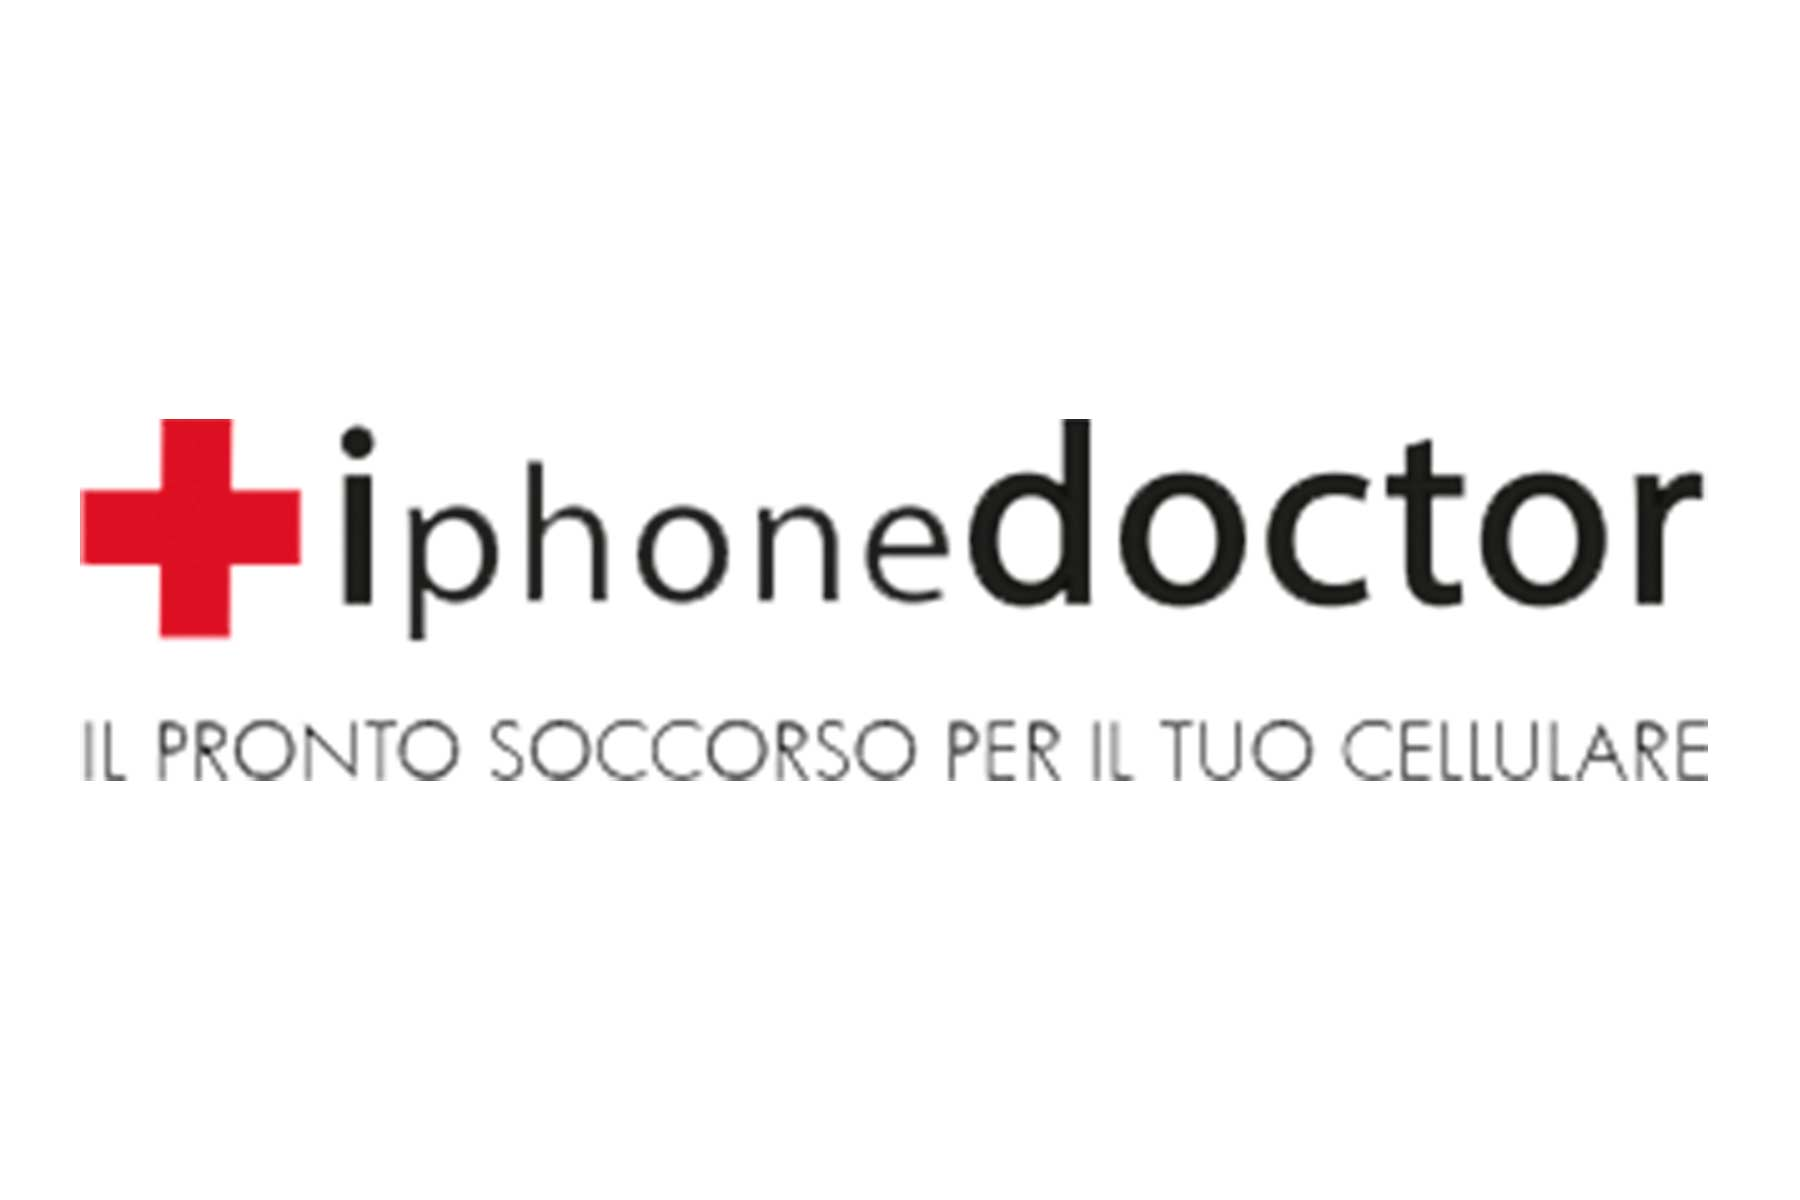 iphone-doctor-2